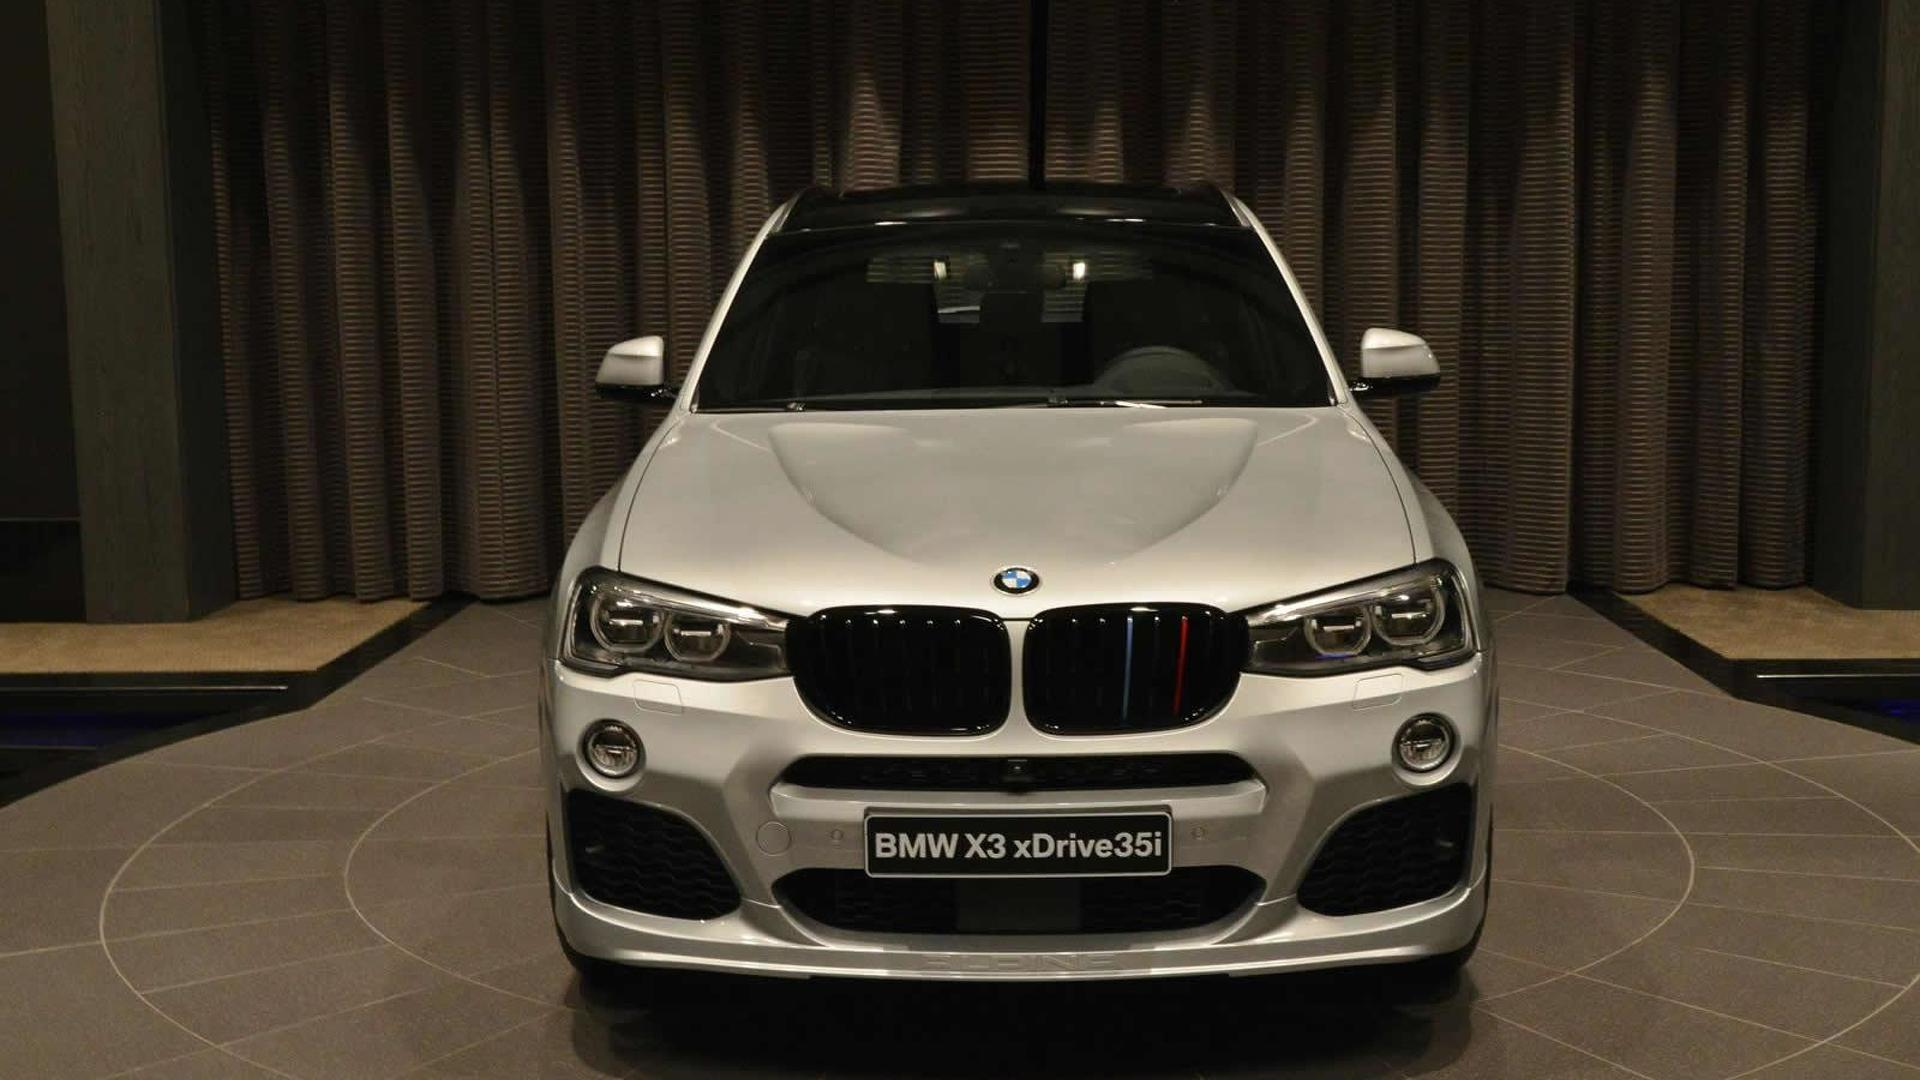 Bmw X3 Xdrive35i With M Performance Parts 579014